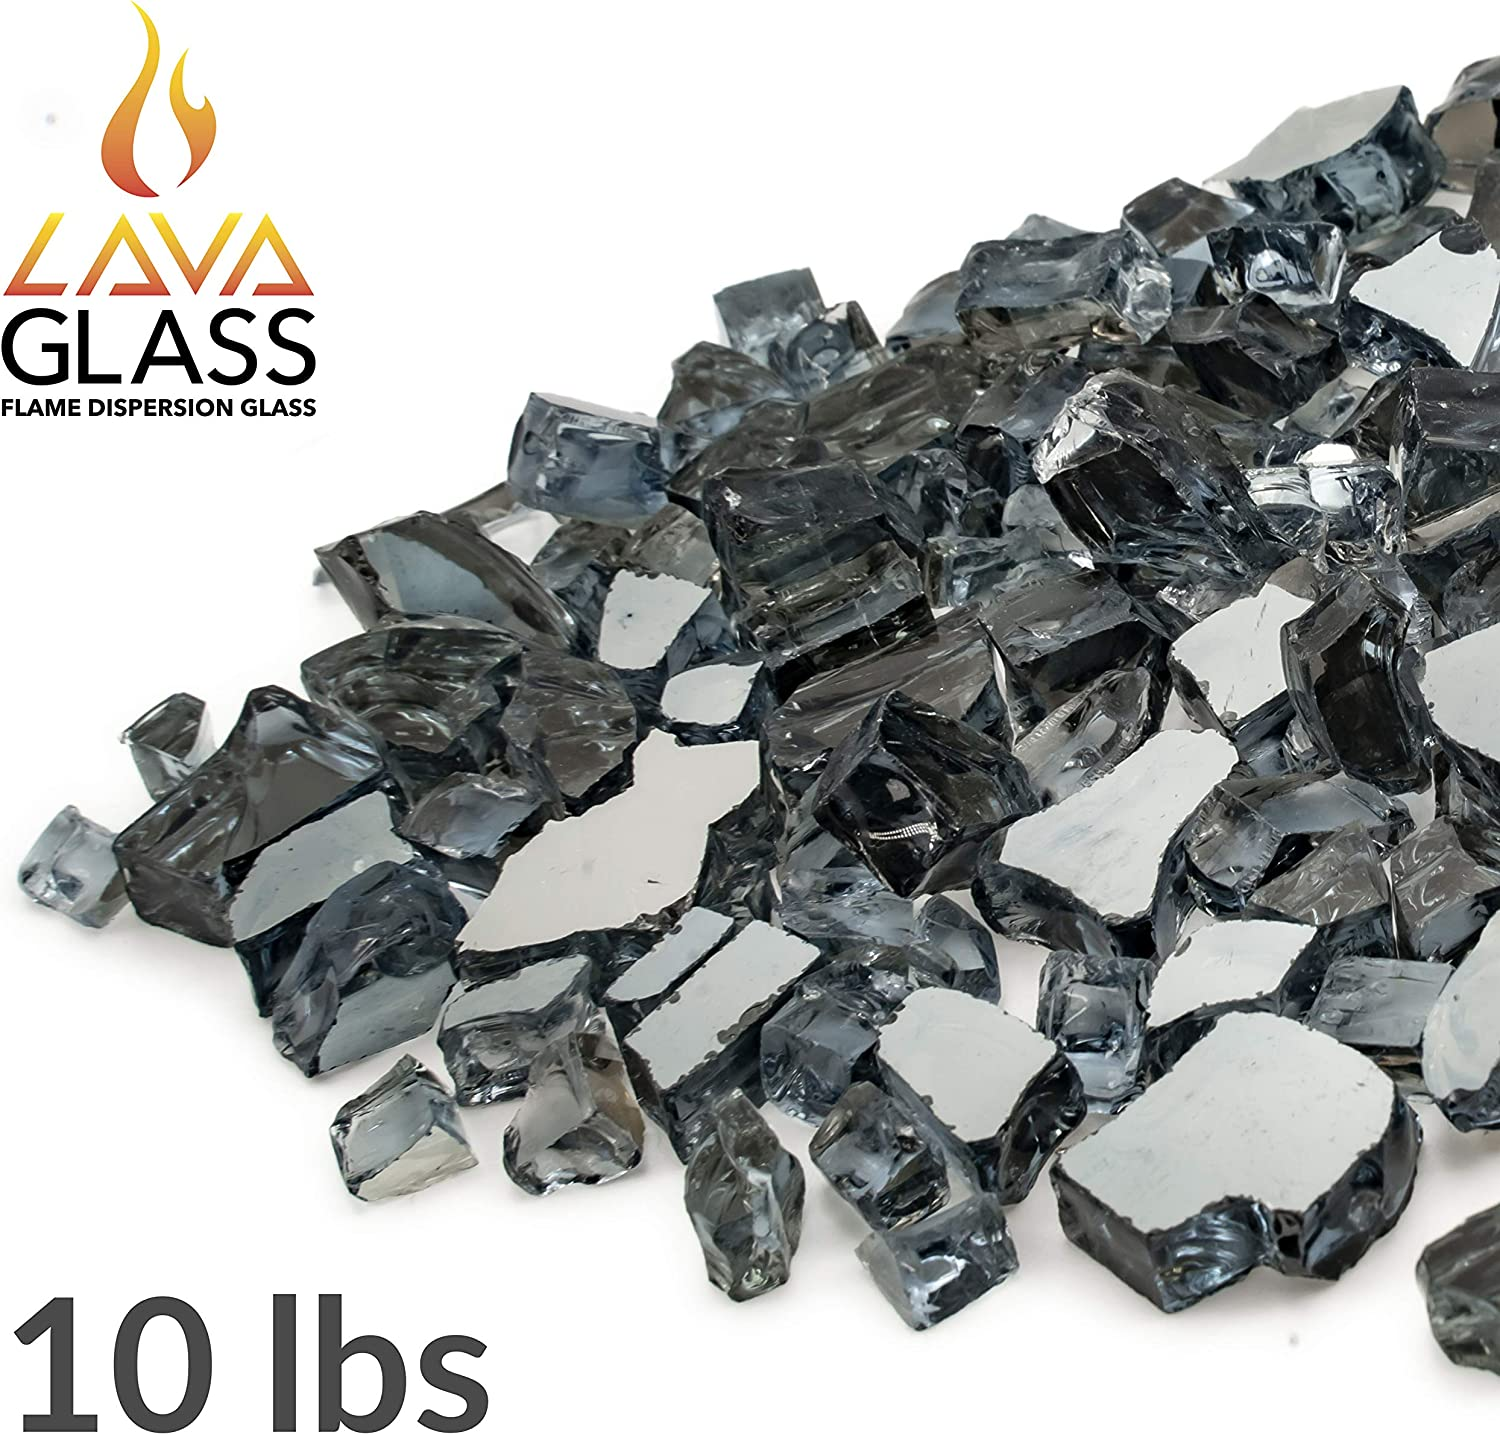 Bond Manufacturing 50698 LavaGlass Classic Cut Fire Pit Dispersion Glass, Moonstone Eclipse